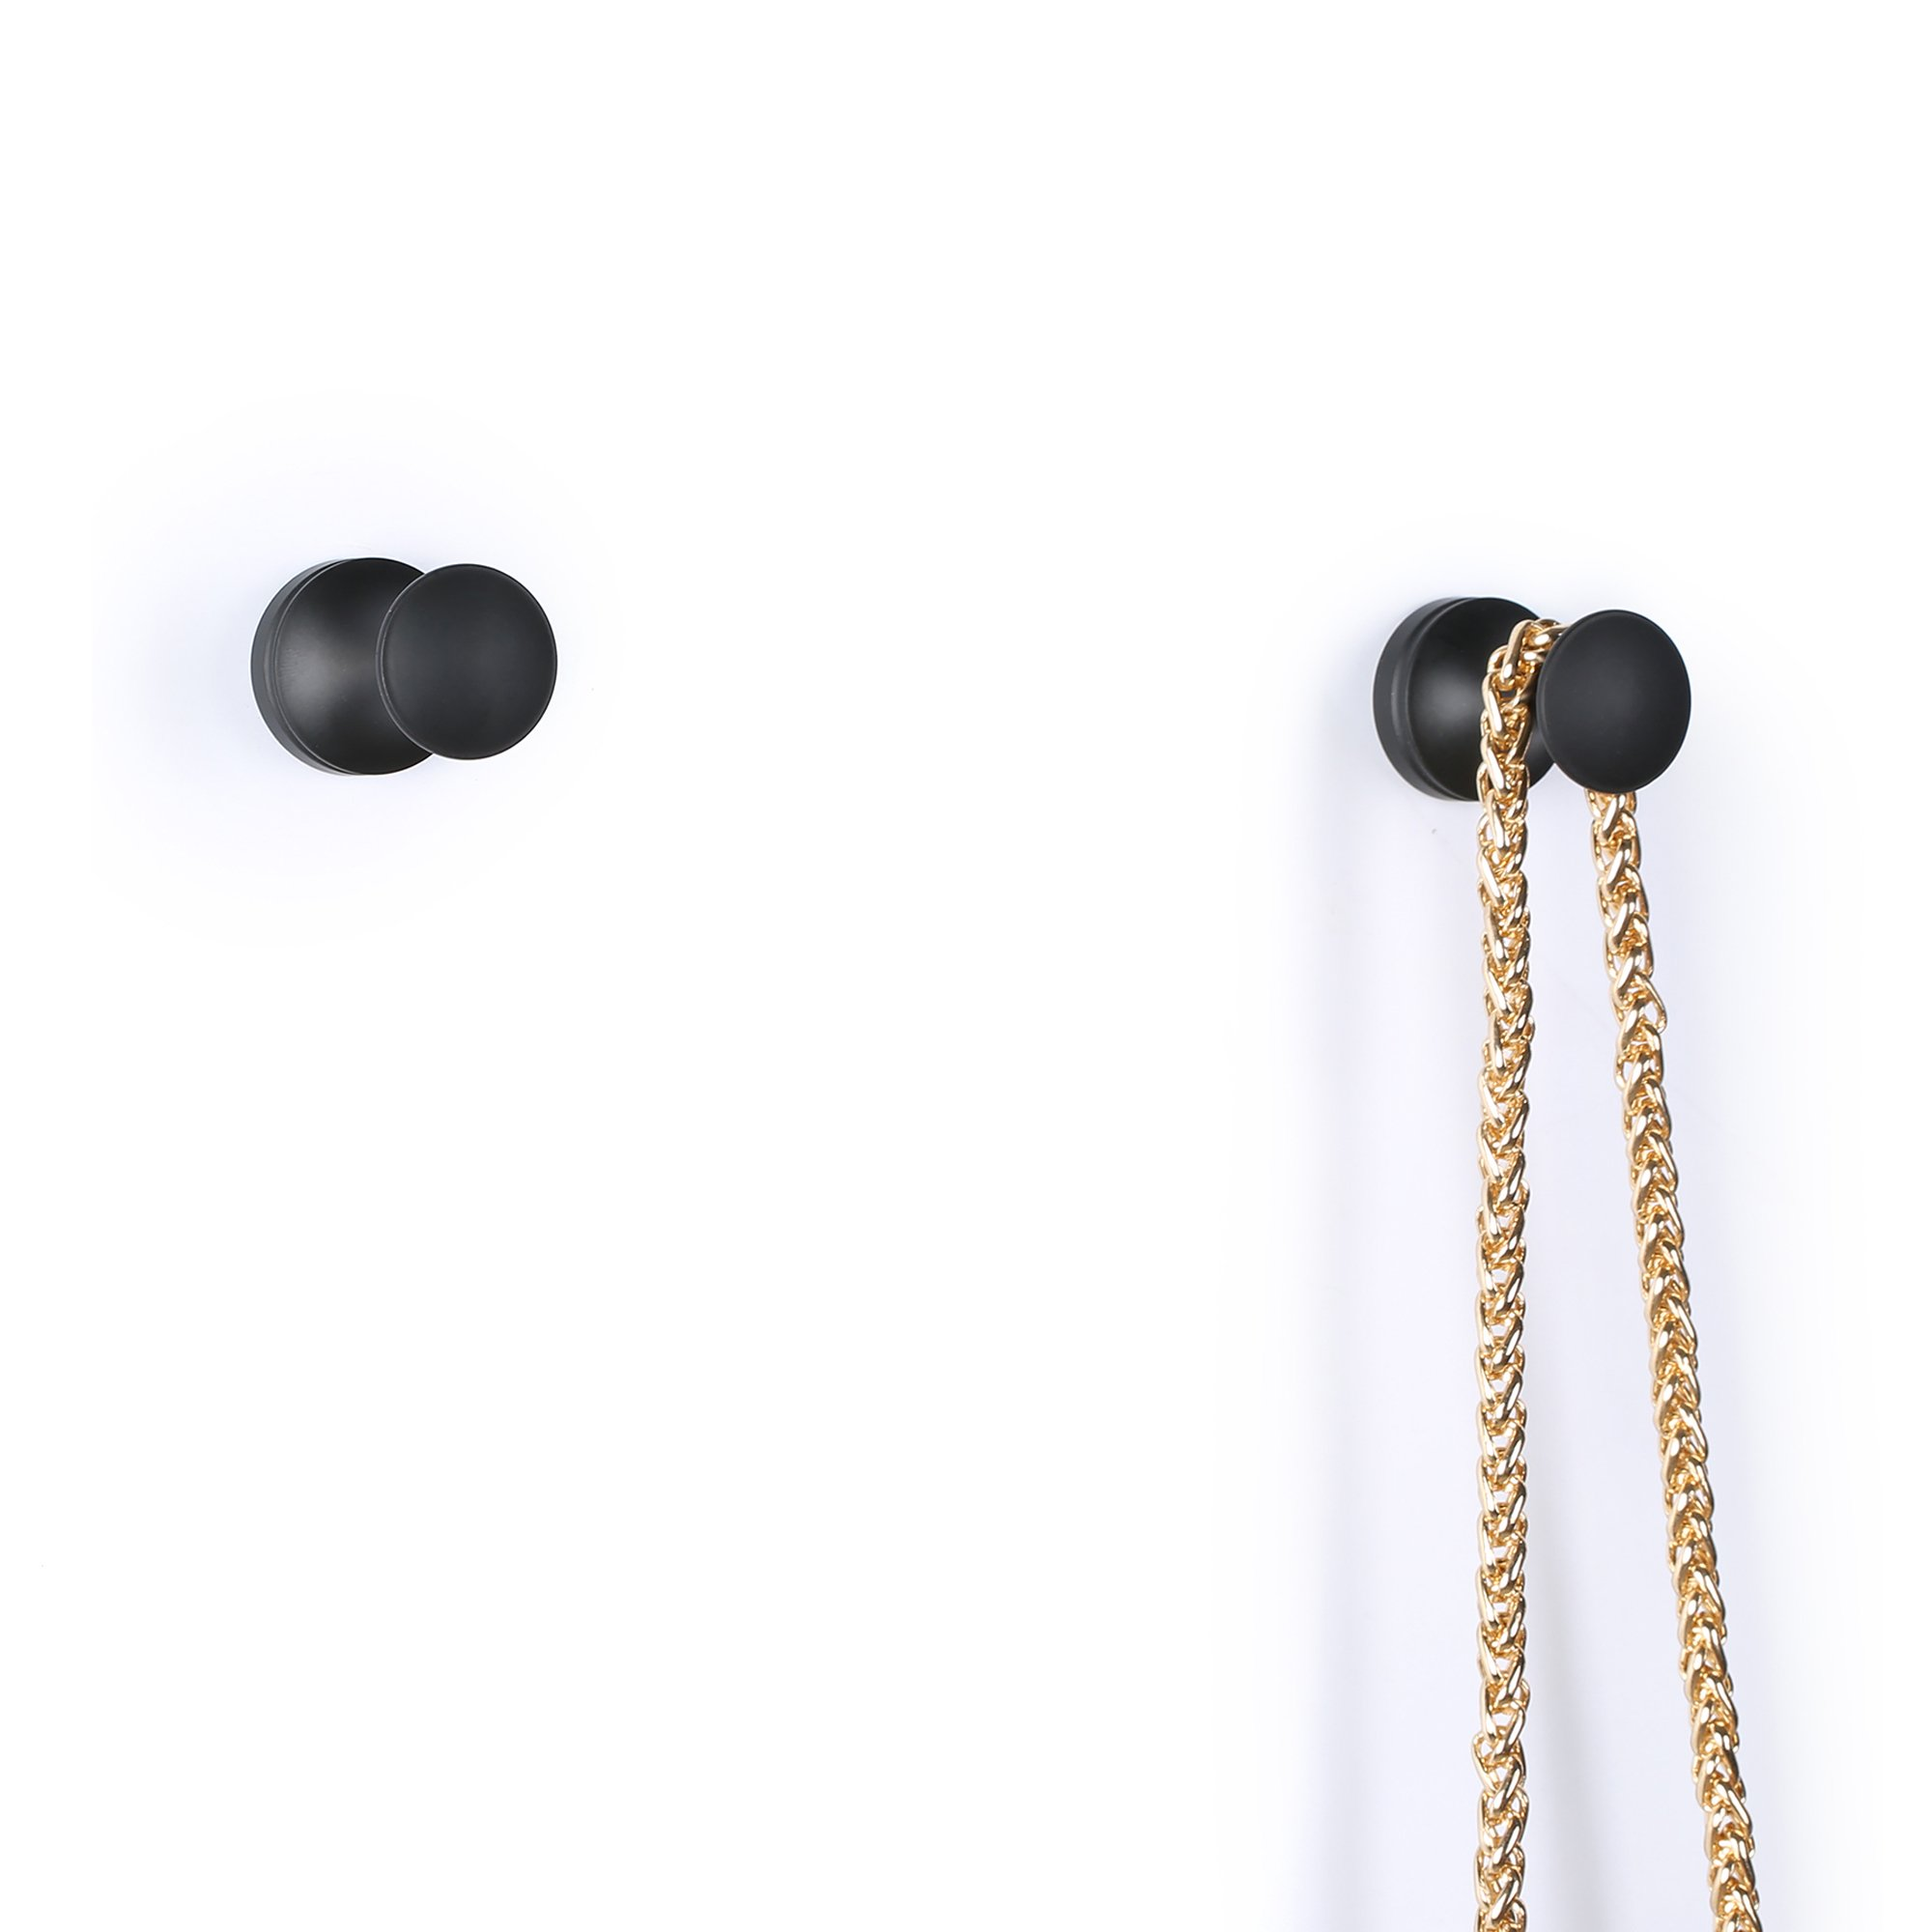 EtechMart Pack of 2 Oil Rubbed Bronze Black Single Hook Towel Coat and Hat Hanger Wall-Mounted